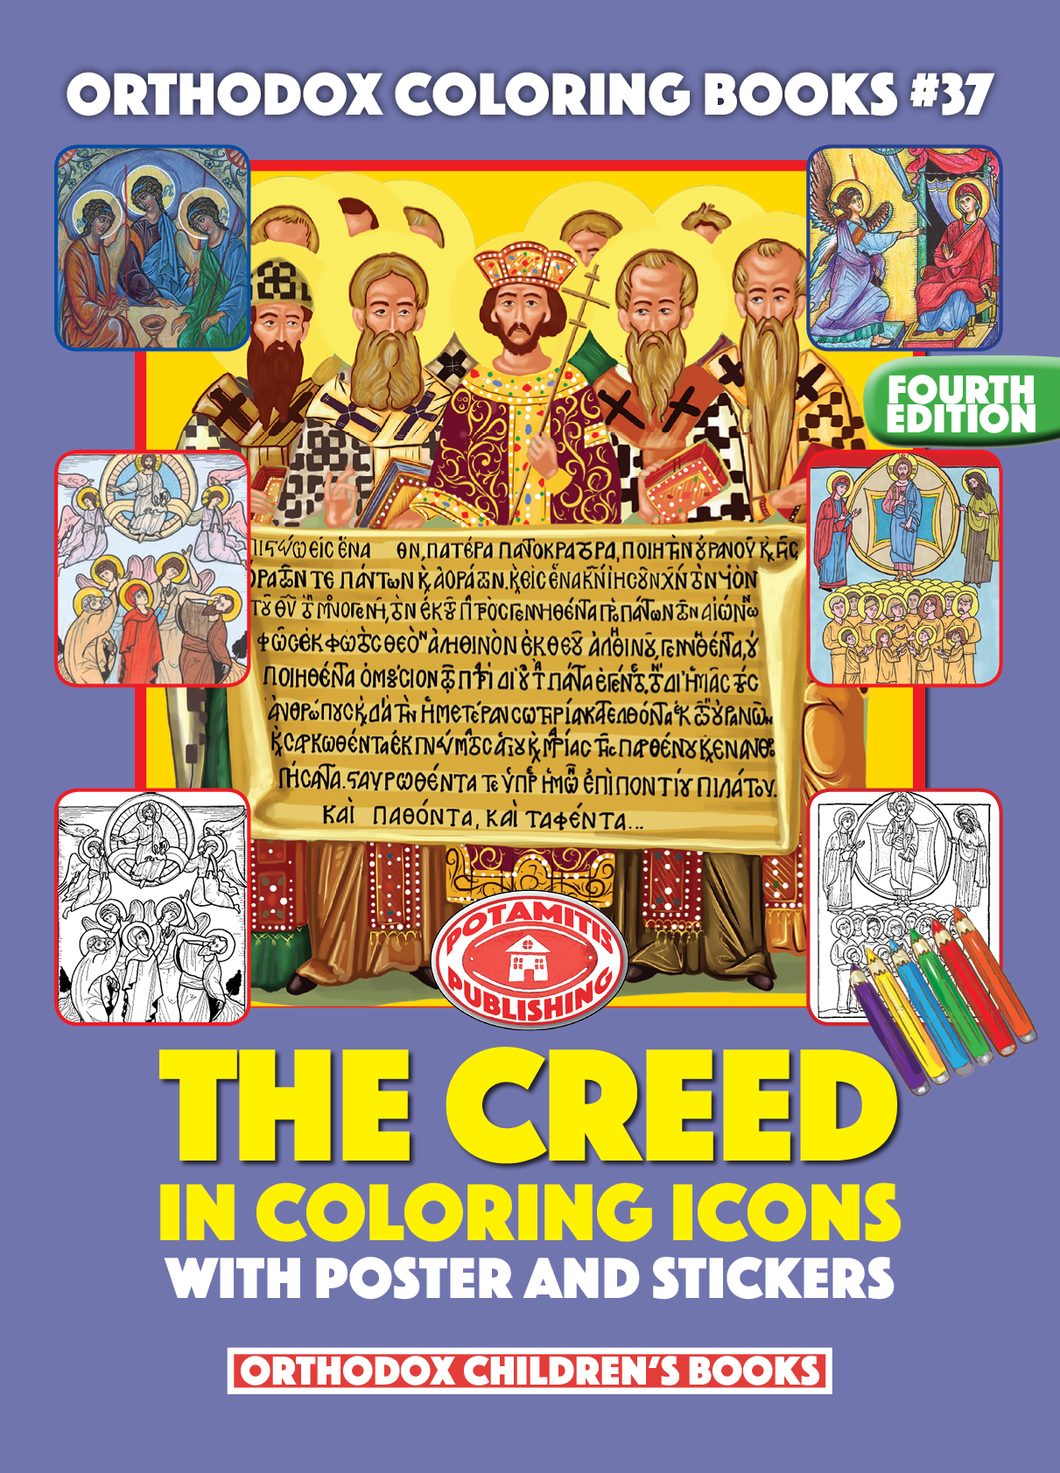 Orthodox Coloring Books #37 - The Creed in Coloring Icons, with poster and stickers